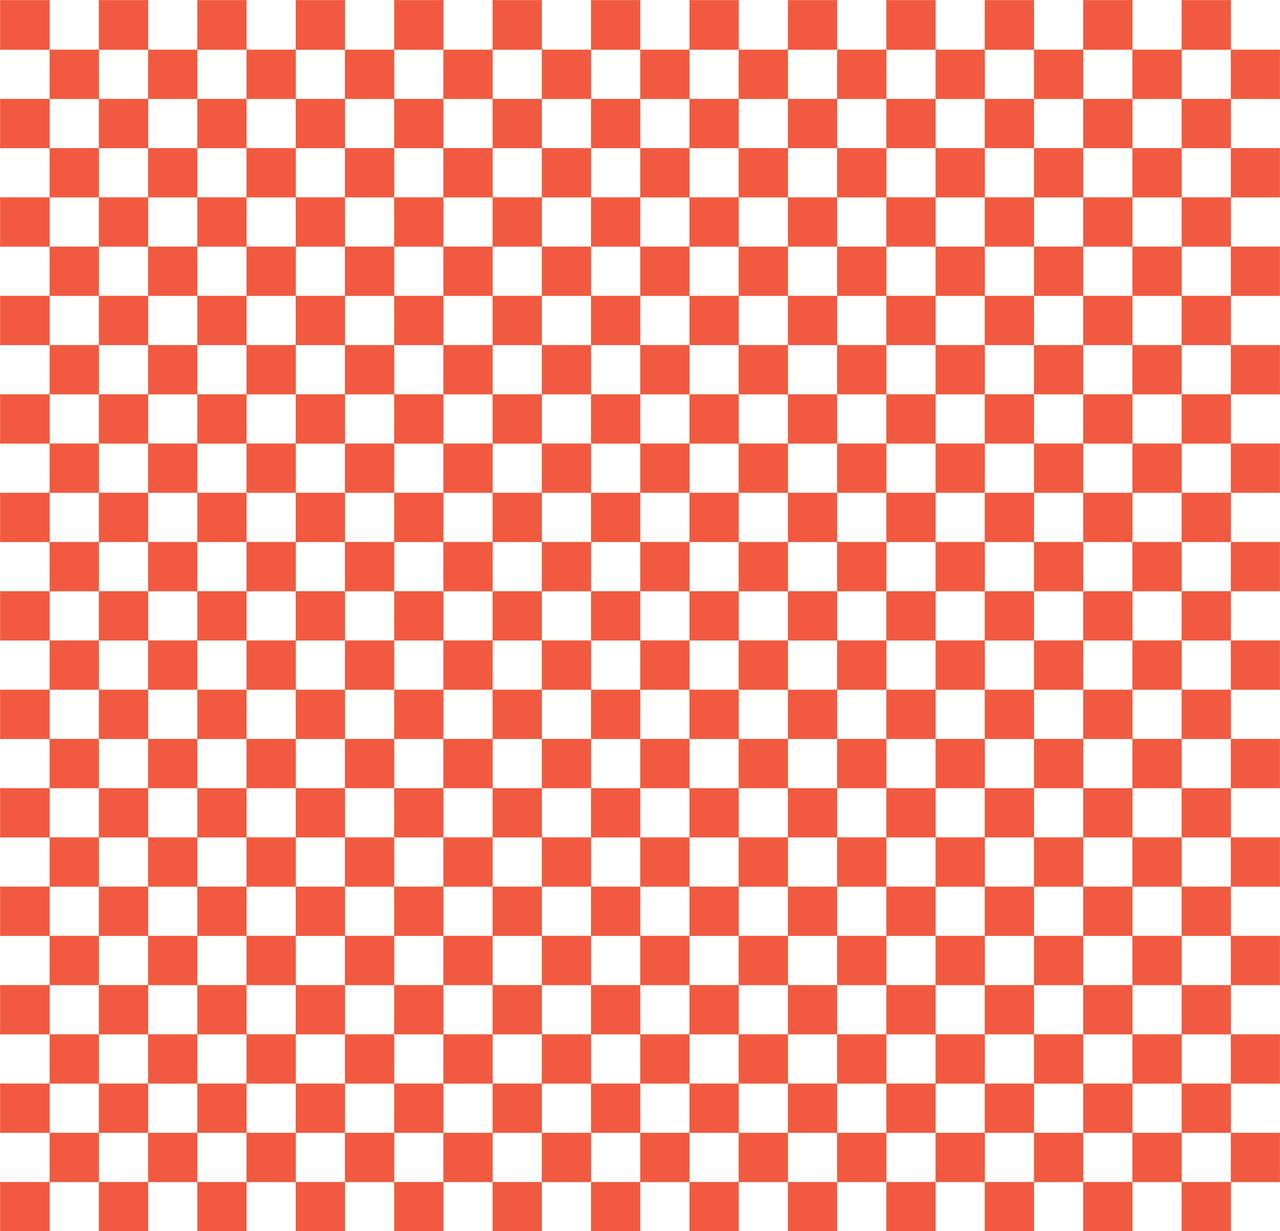 "Wax Paper Food Basket Liners - Deli/BBQ Sandwich Wrap - Red & White Checkered - 50 12""x12"" Sheets"